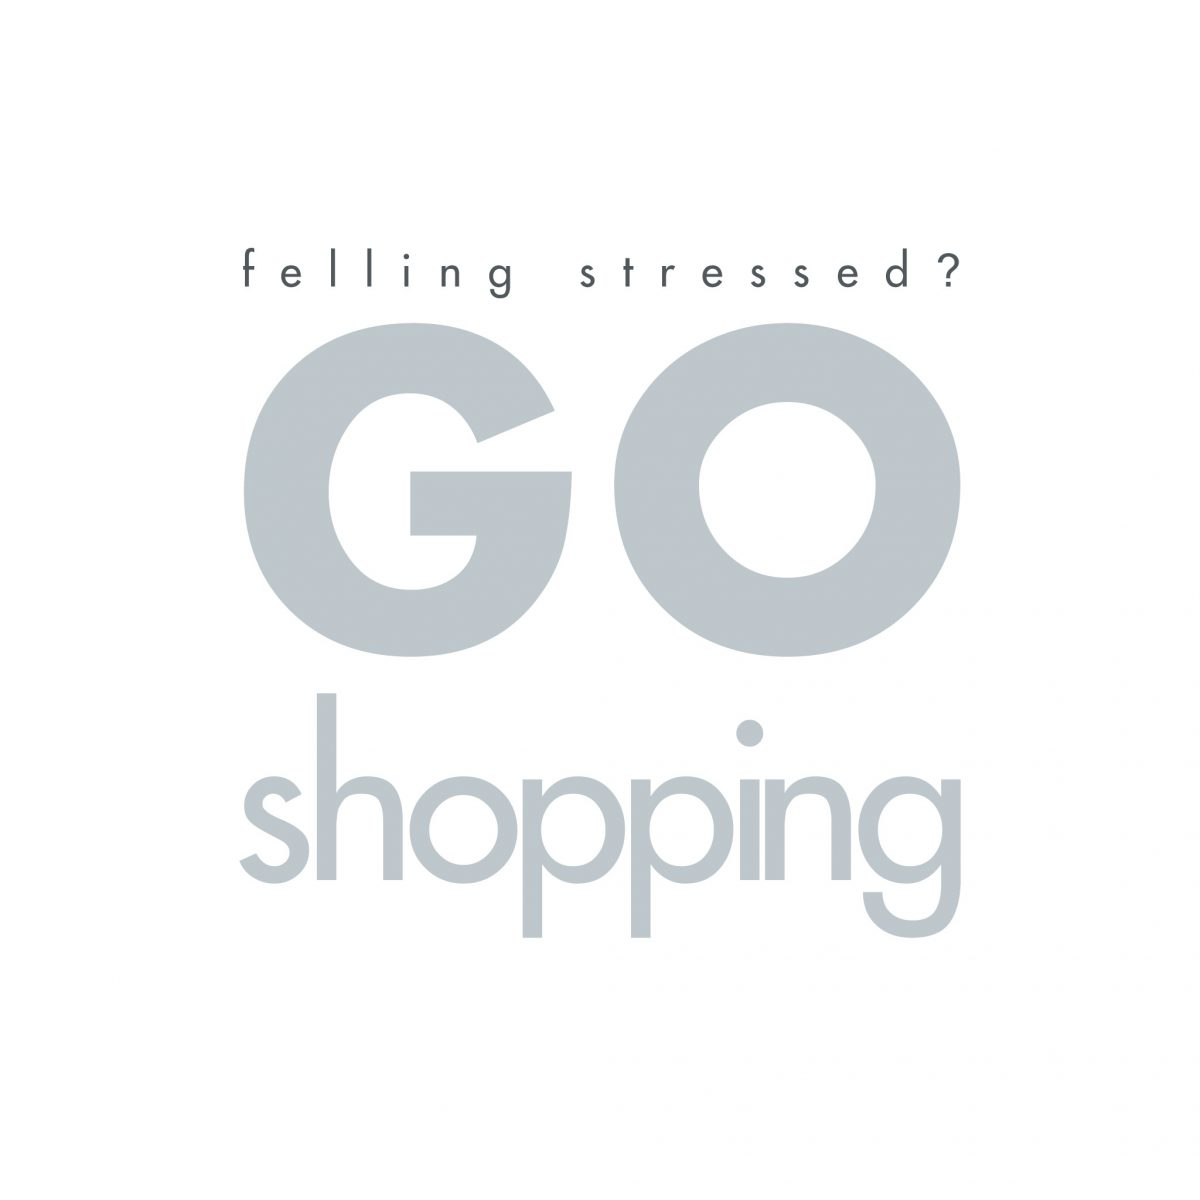 Felling stressed? go shopping, design, digital, ch3